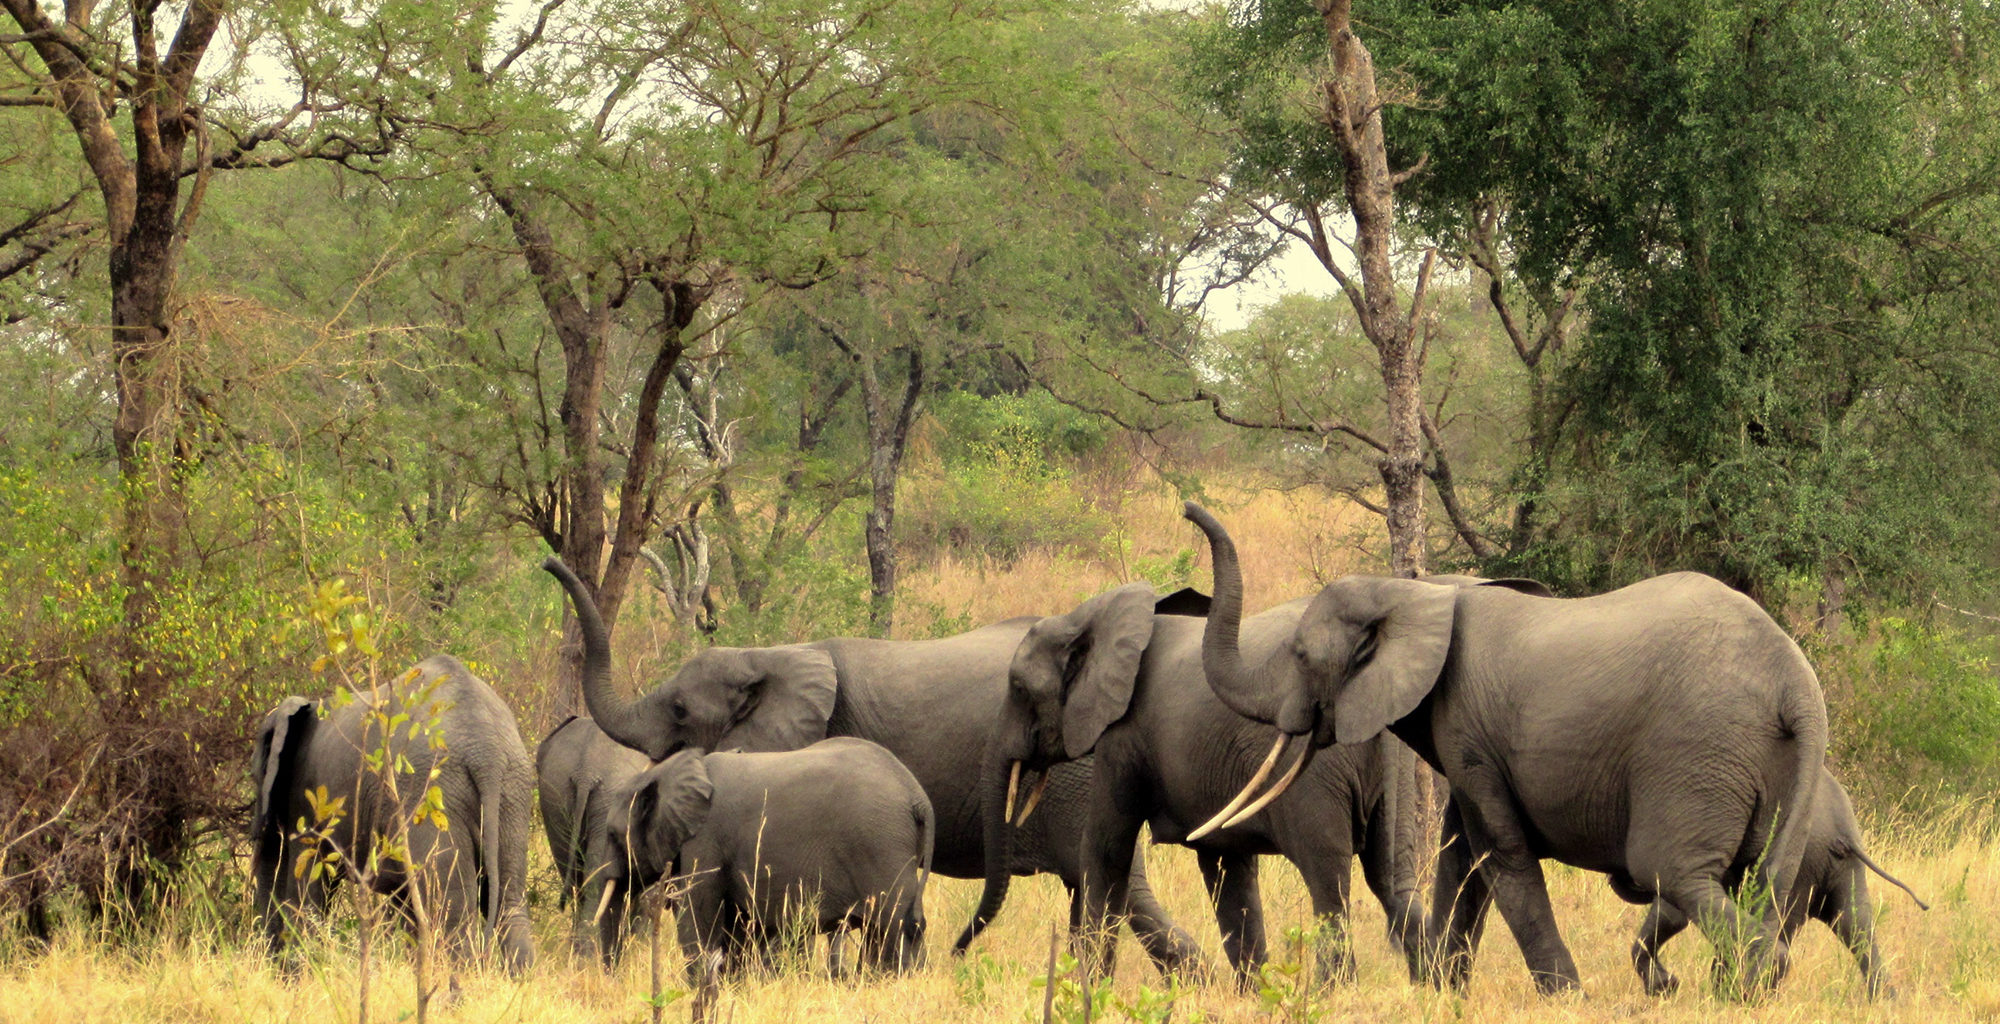 Uganda-Semliki-National-Park-Elephants